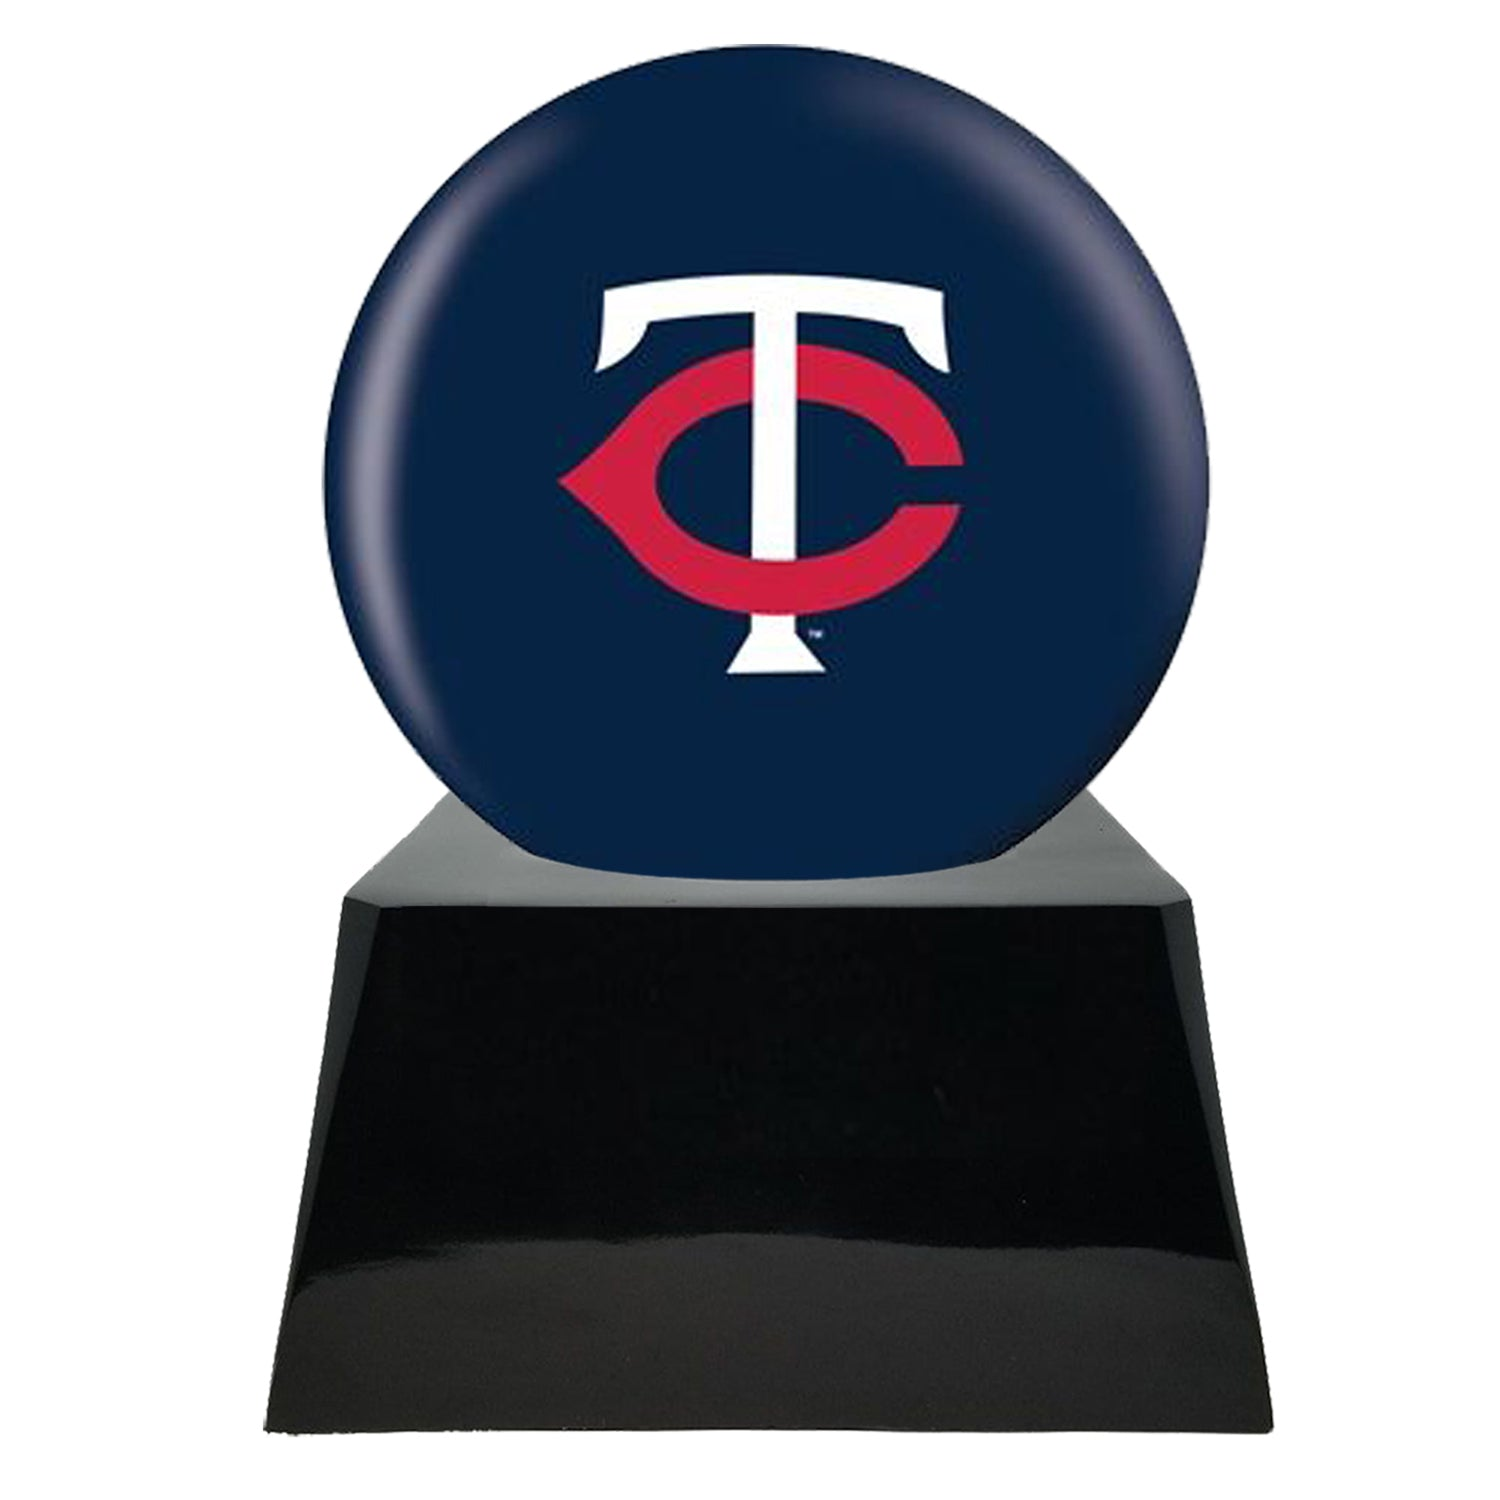 Baseball Team Urn - Minnesota Twins Ball Decor with Custom Metal Plaque Baseball Cremation Urn for Human Ashes - MLB URN - Memorials4u